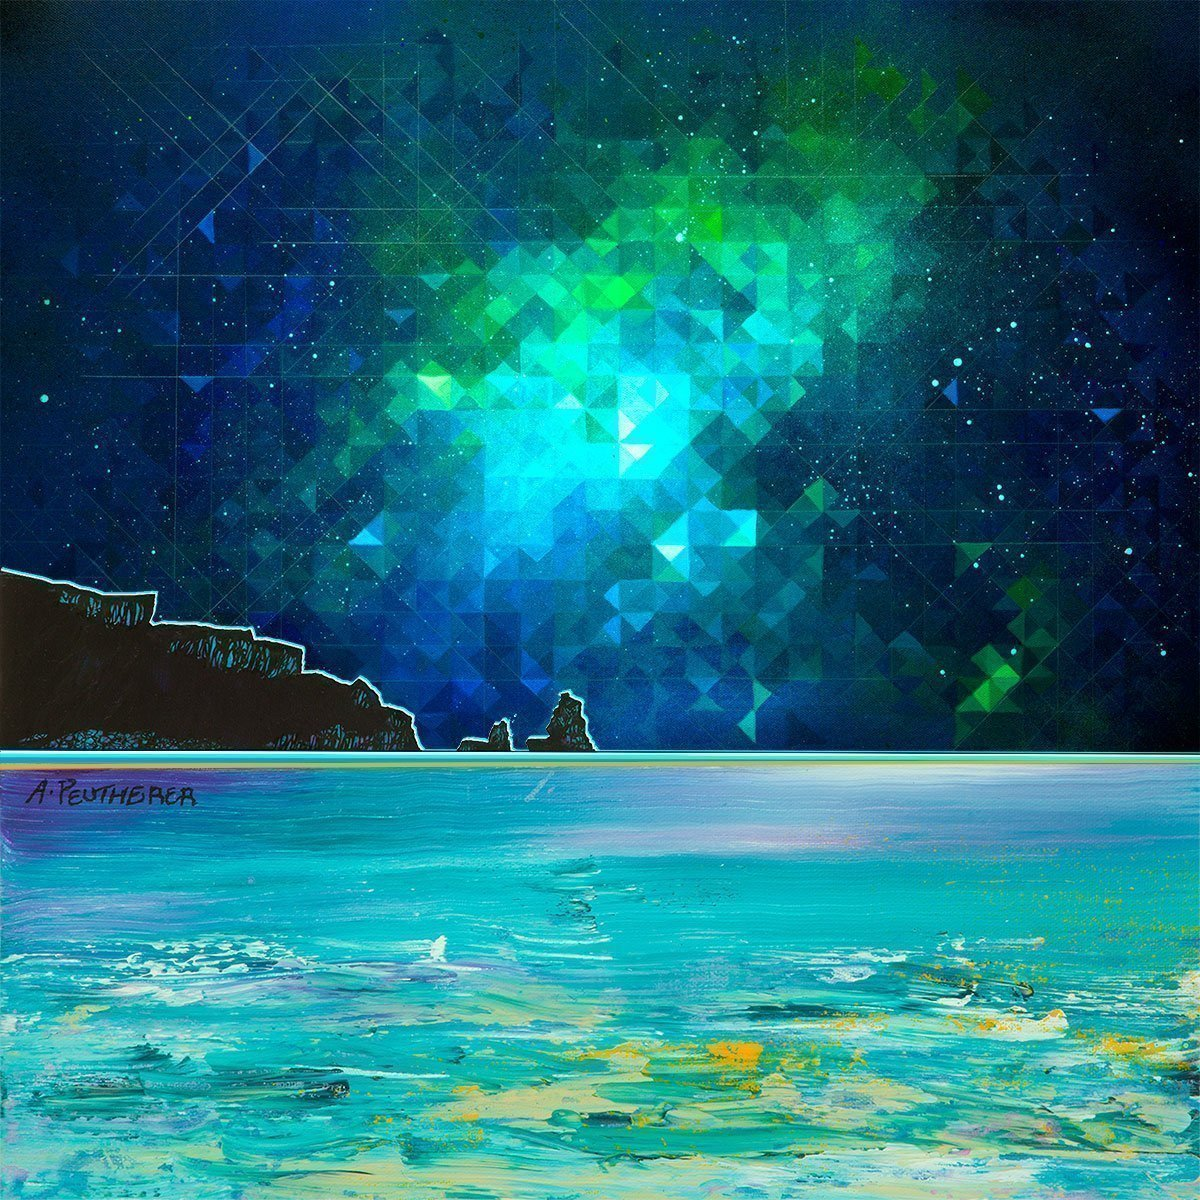 Nebula over Talisker Bay, Carbost on Skye - An abstract geometric Scottish landscape painting